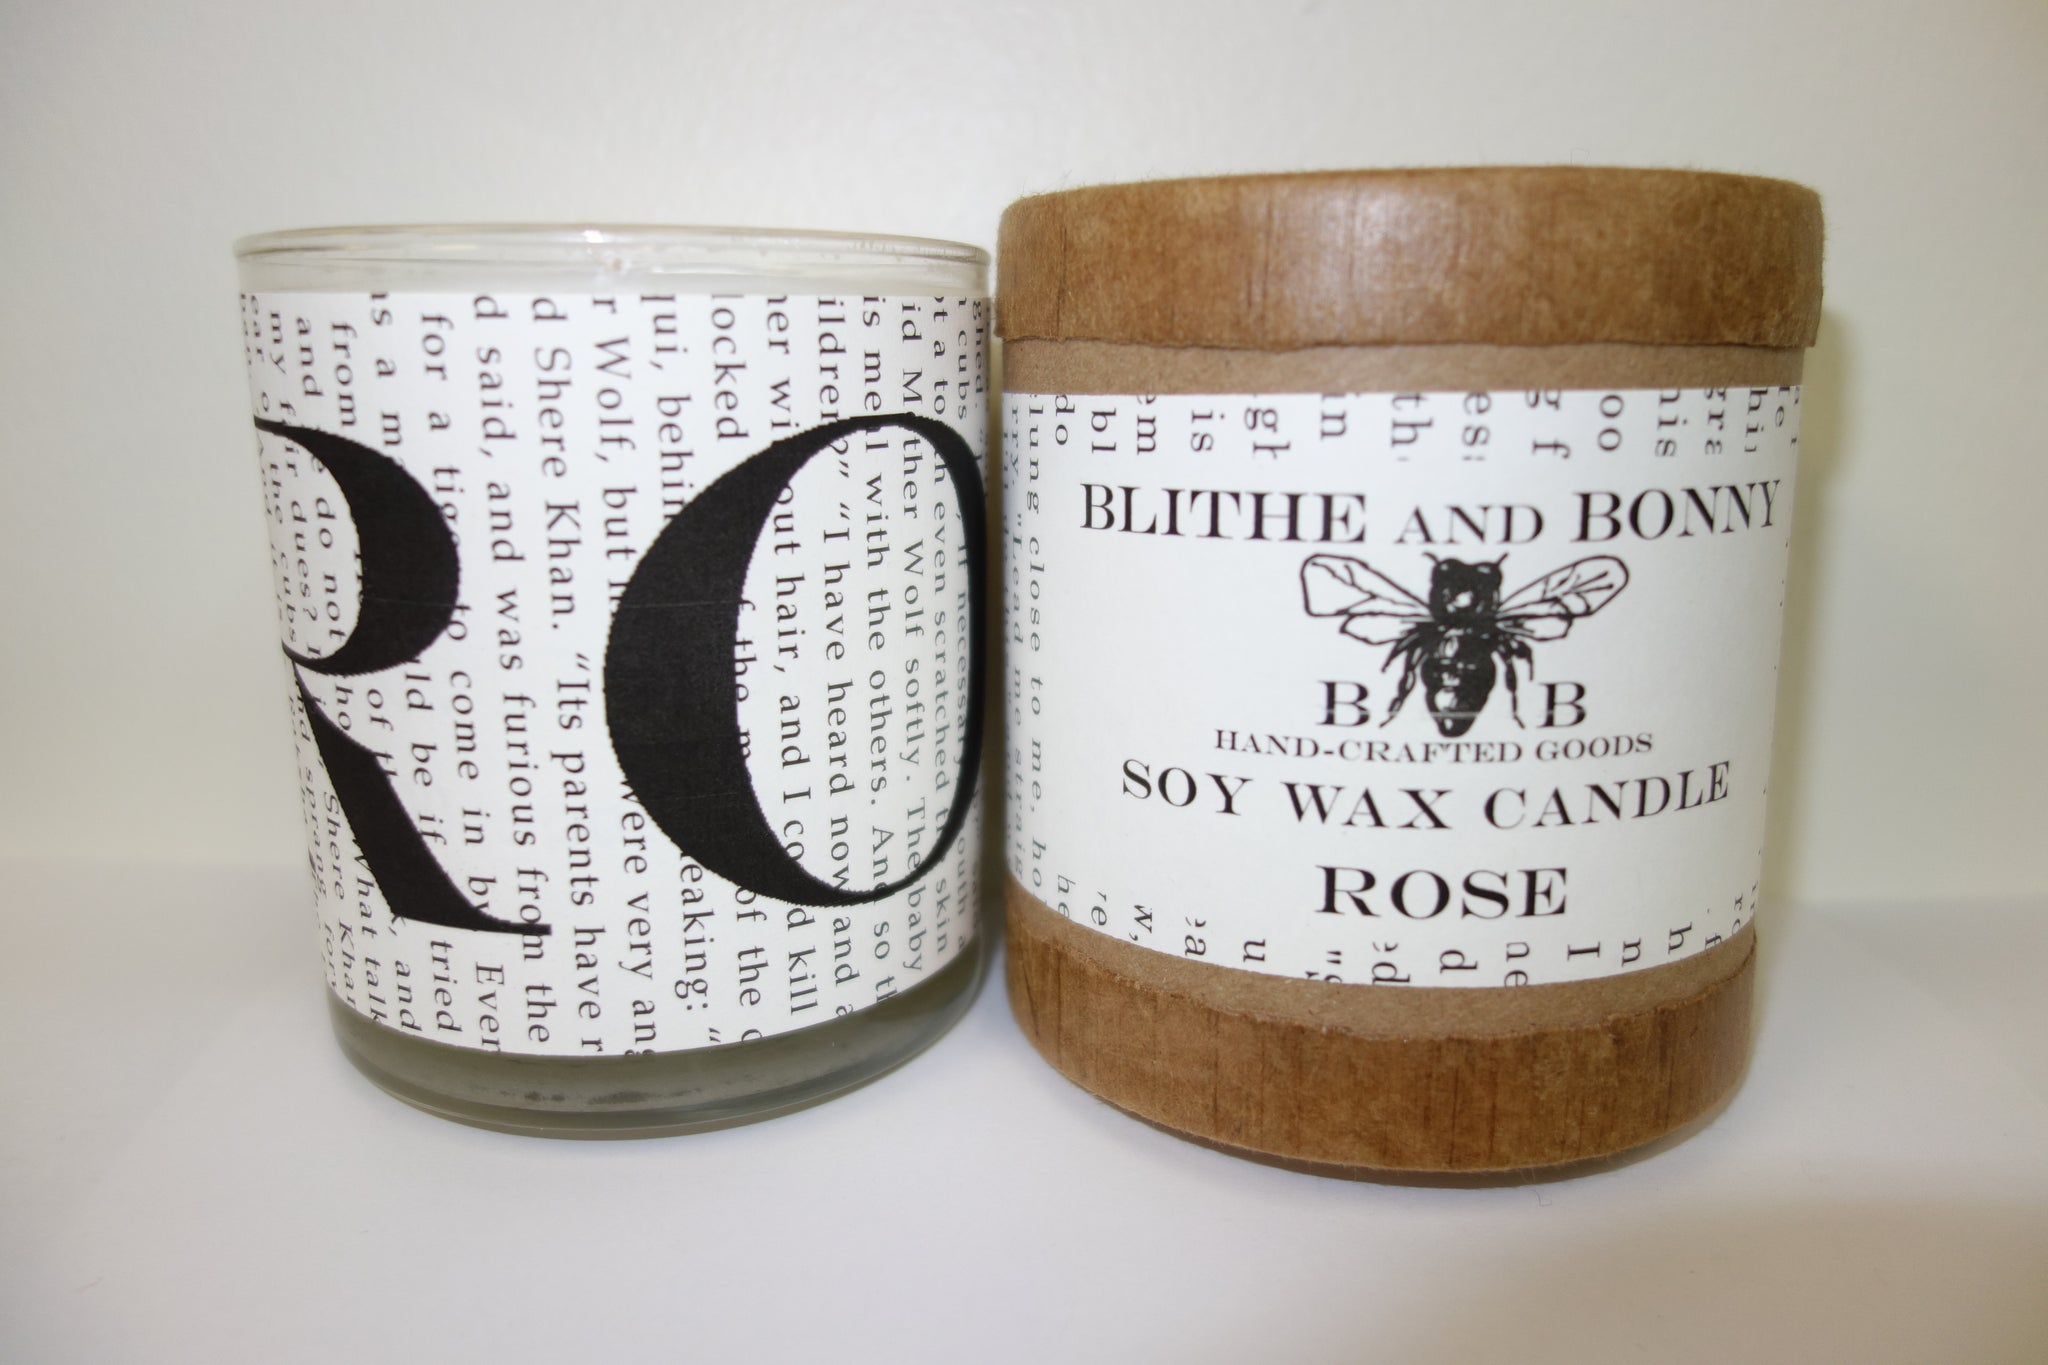 Blithe & Bonny Handcrafted Candle: Rose